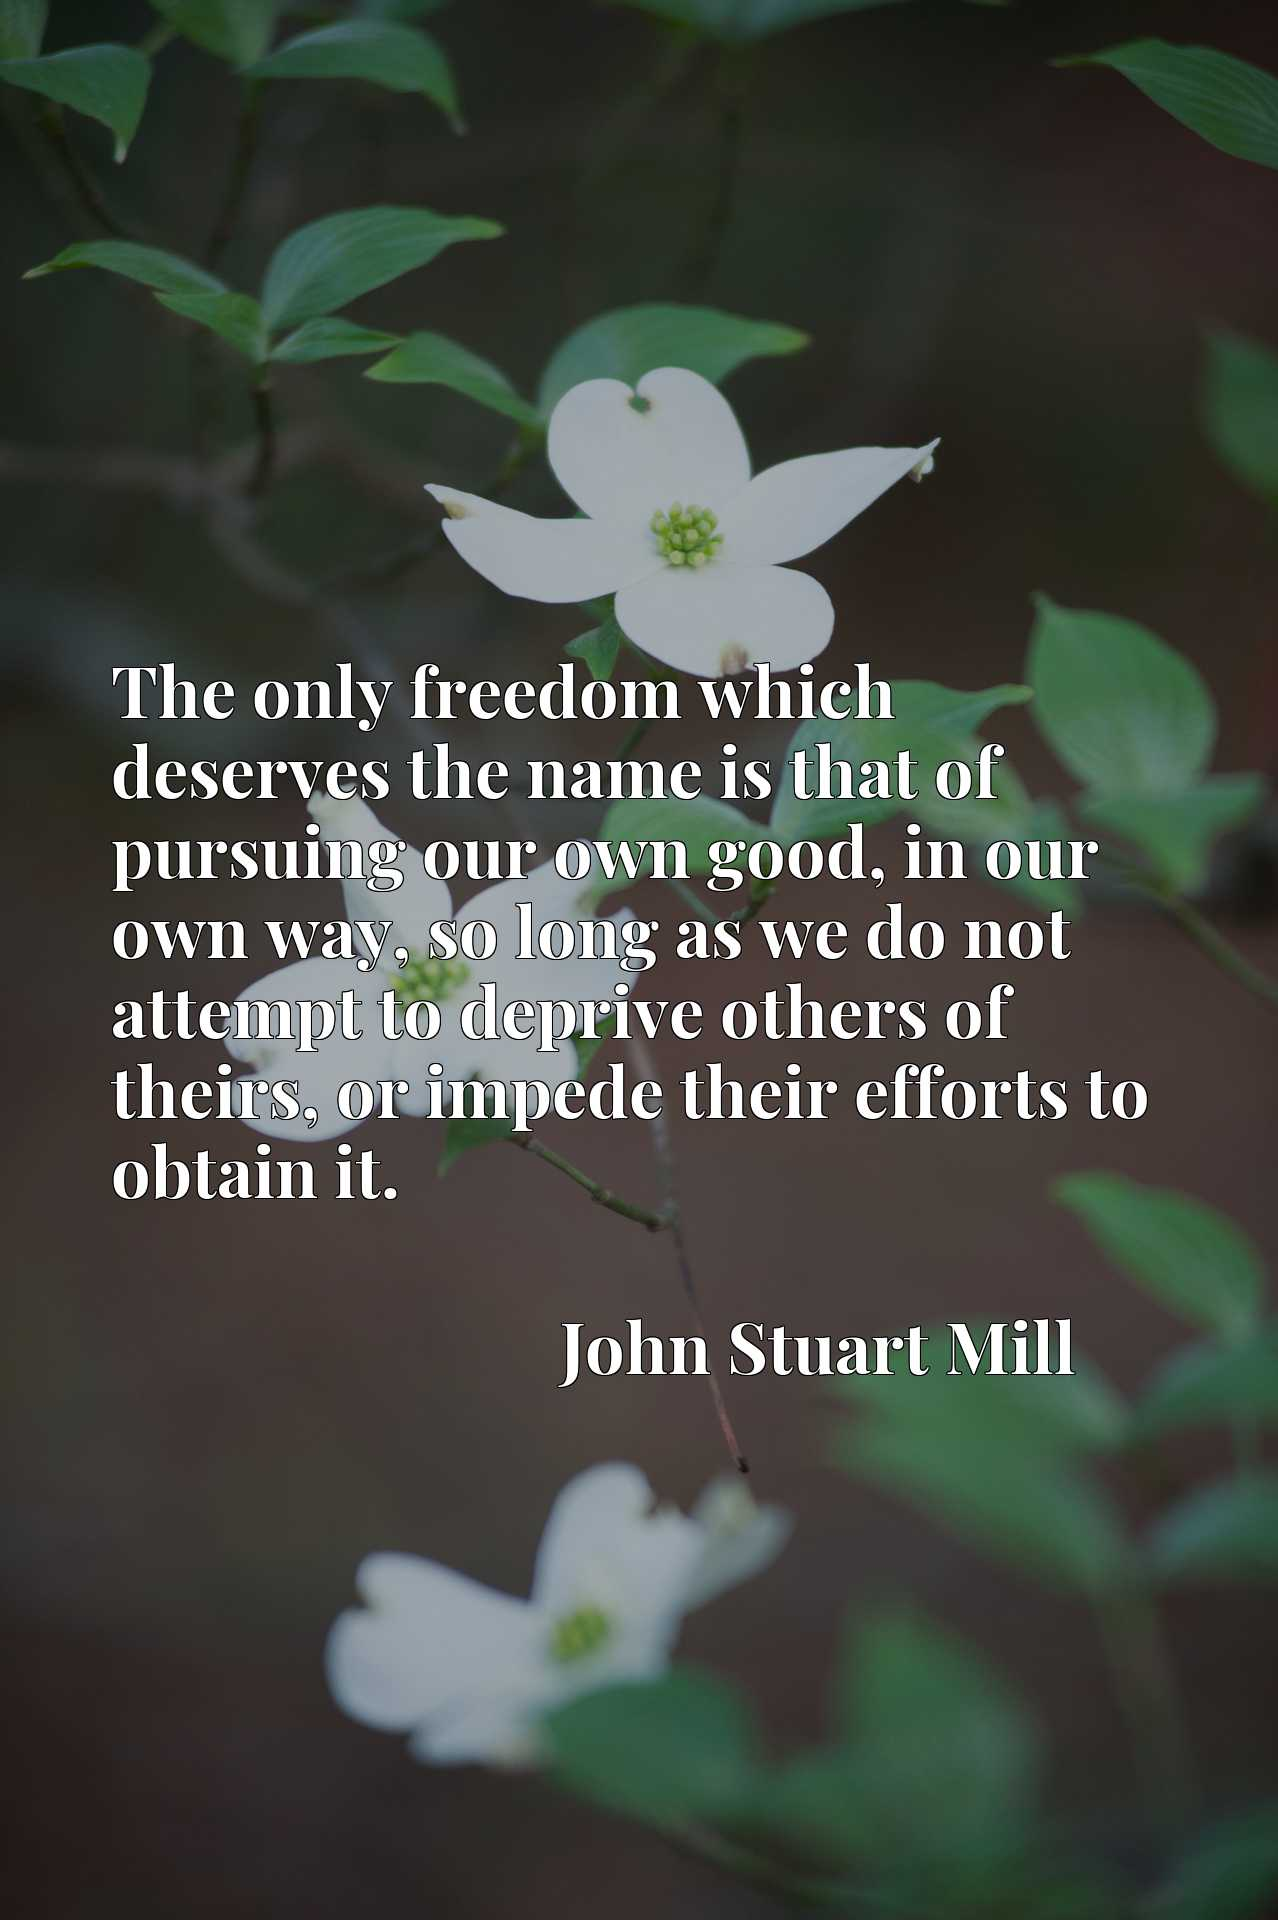 The only freedom which deserves the name is that of pursuing our own good, in our own way, so long as we do not attempt to deprive others of theirs, or impede their efforts to obtain it.